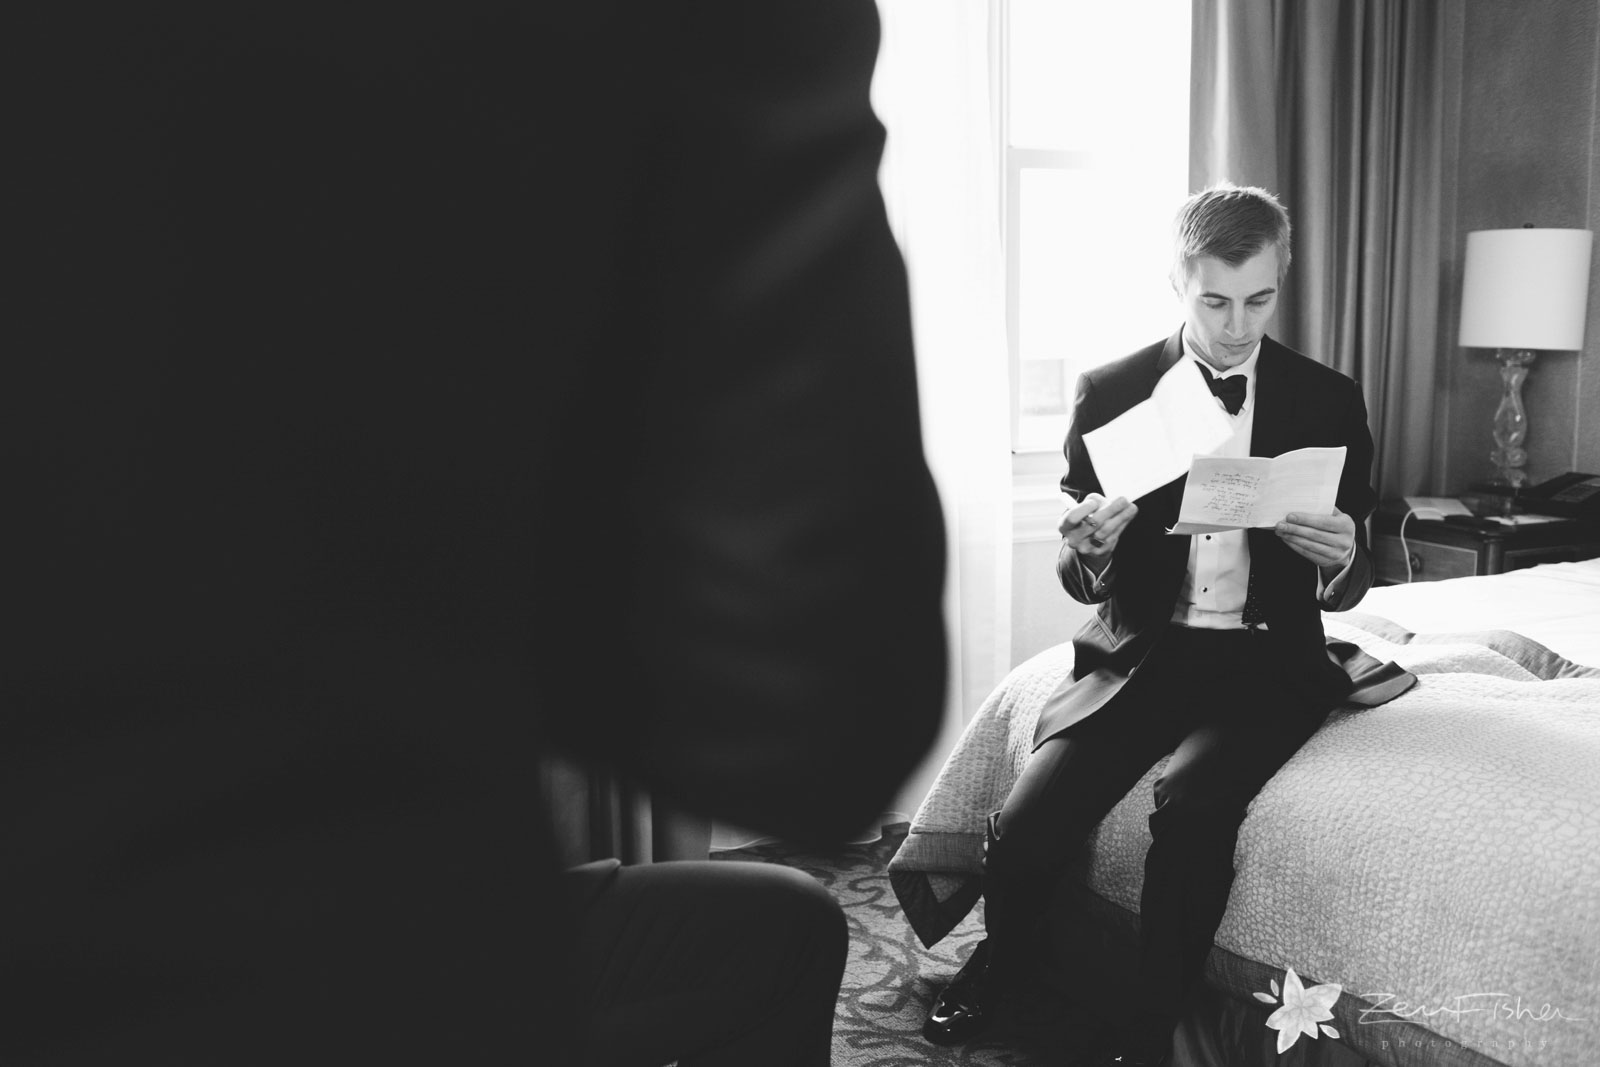 Groom sits on bed in hotel room and reads through his hand-written vows, making final touches.